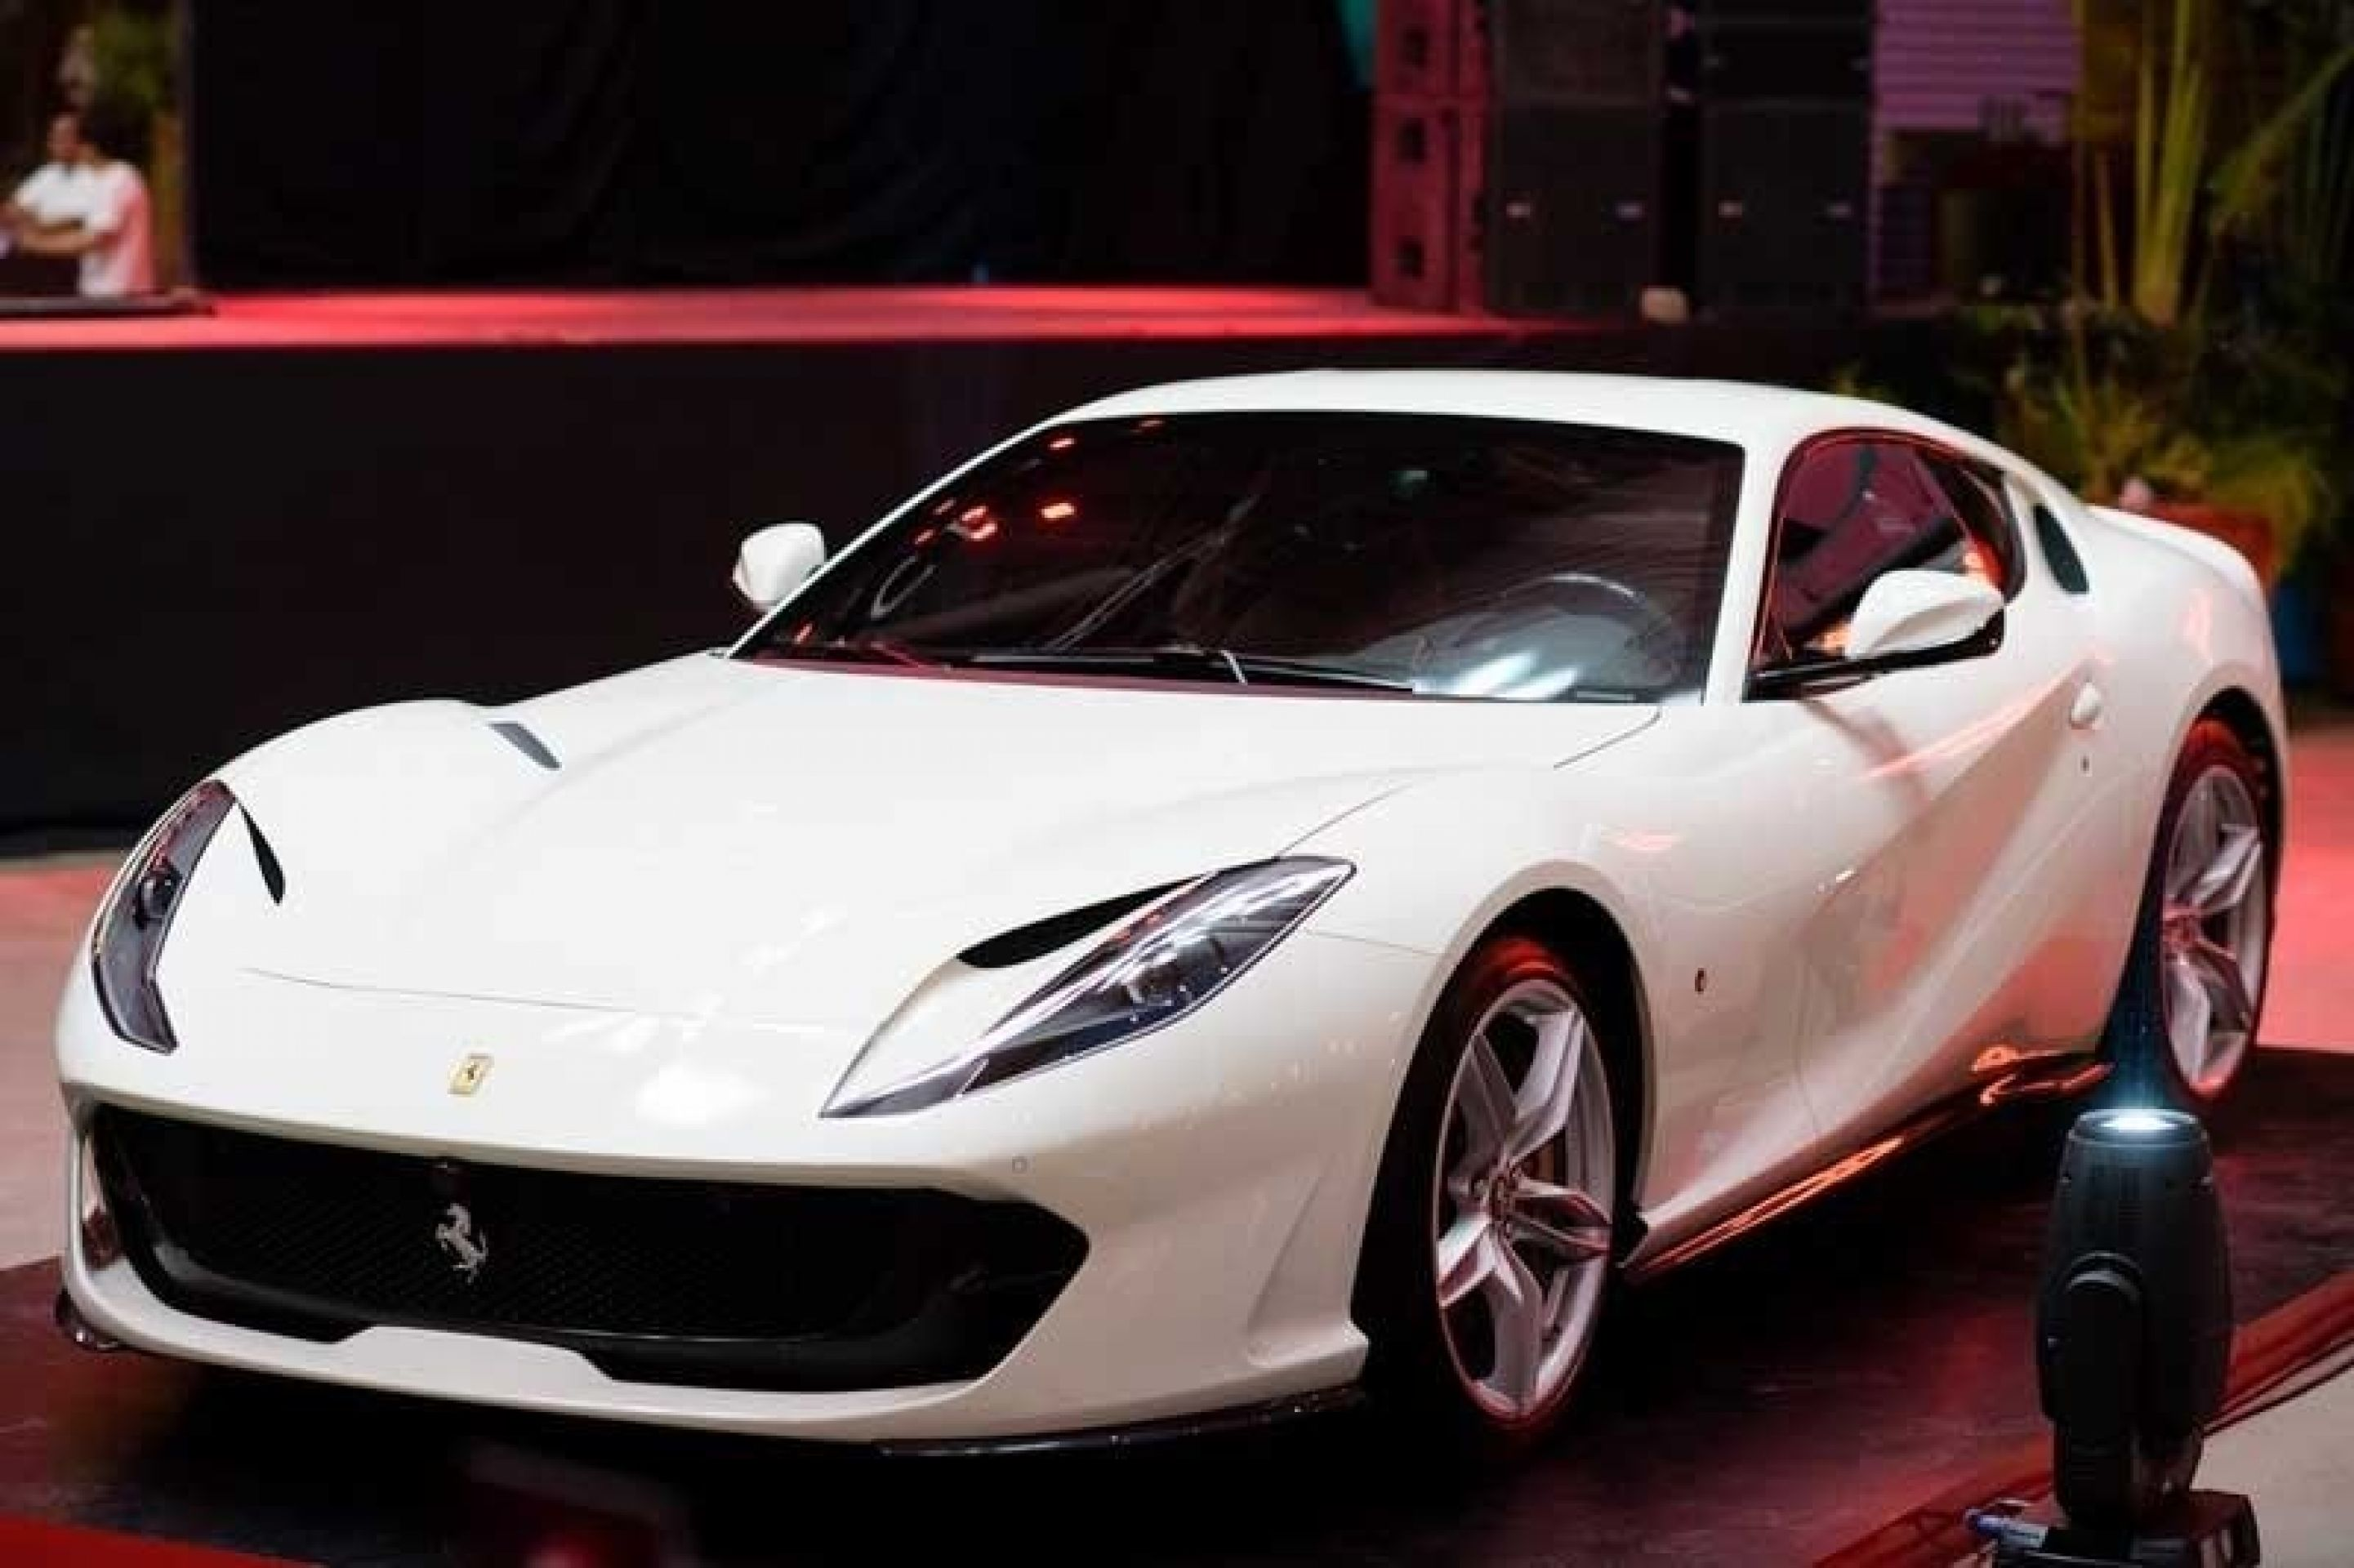 Ferrari 812 Superfast (LHD) 2018 Brand New Unit